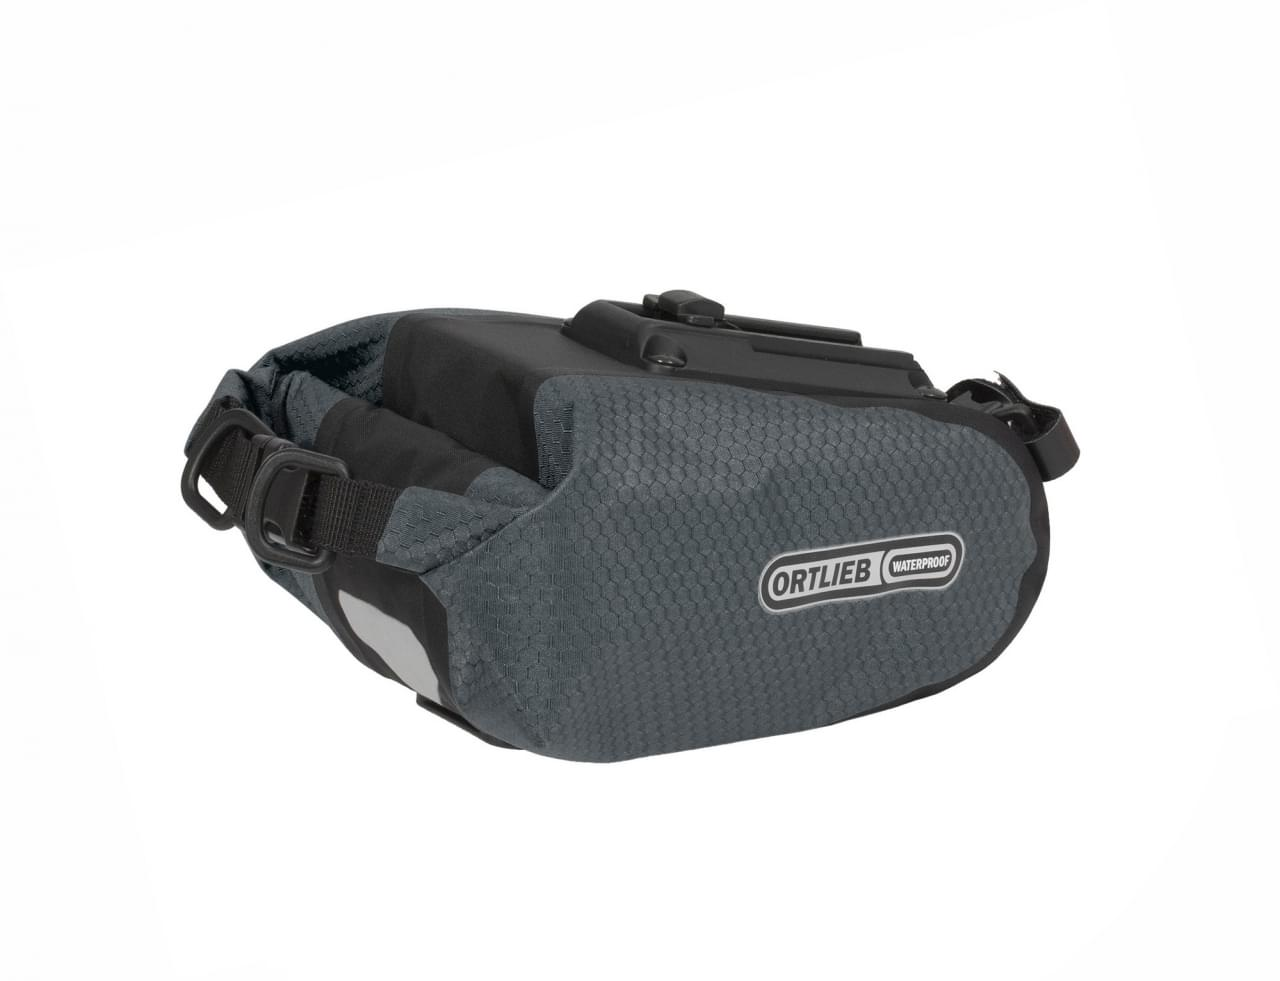 Ortlieb Saddle-Bag S Fietstas